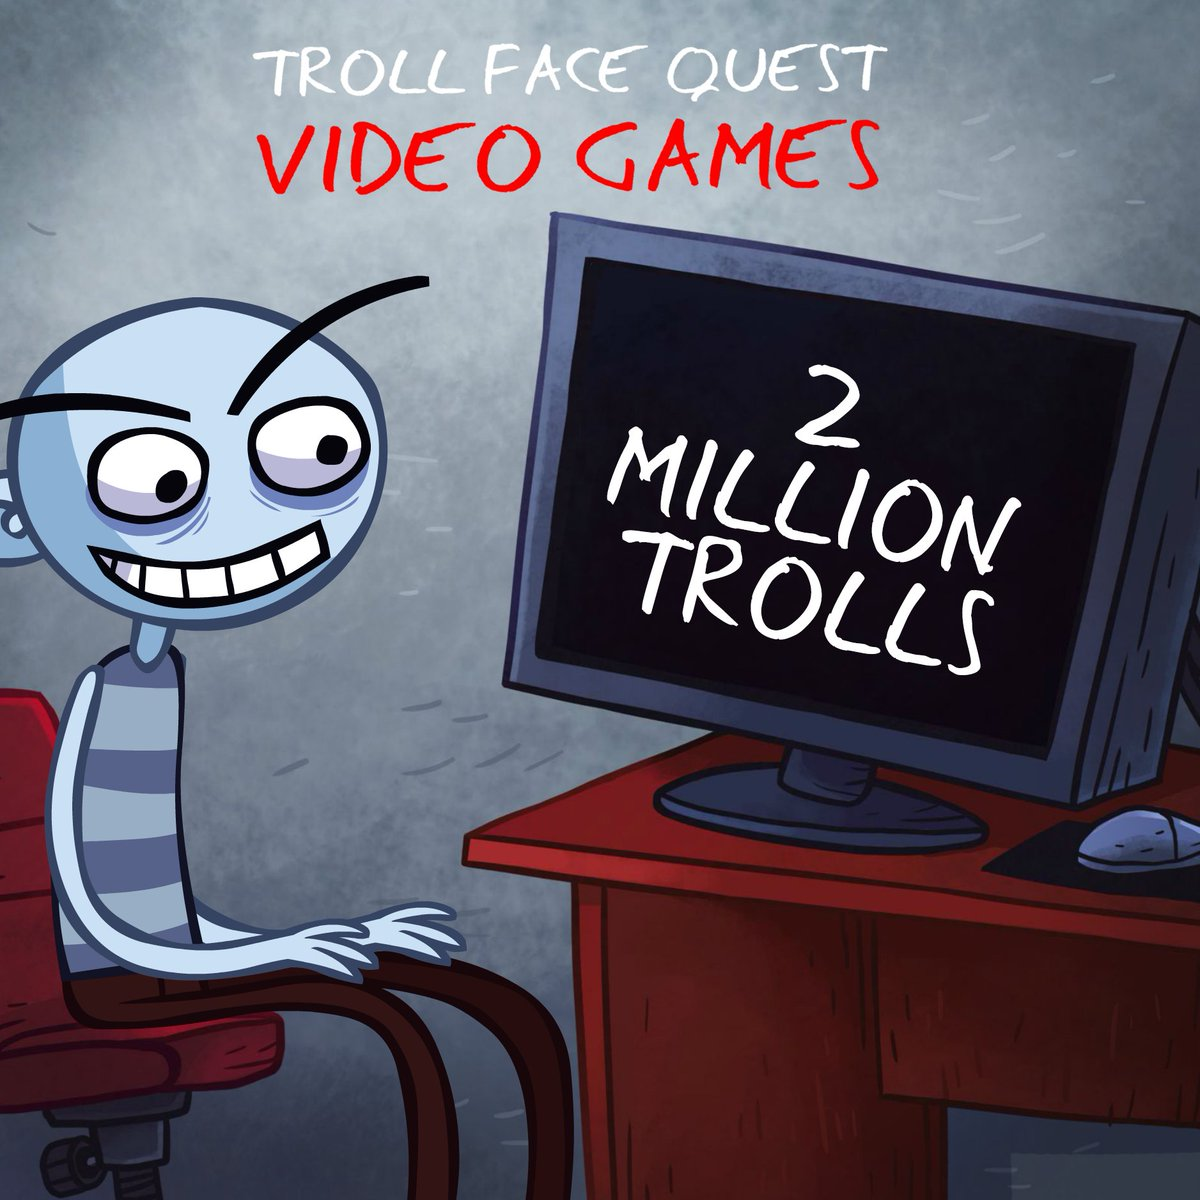 Troll Face Quest (@TFQuestGame) | Twitter